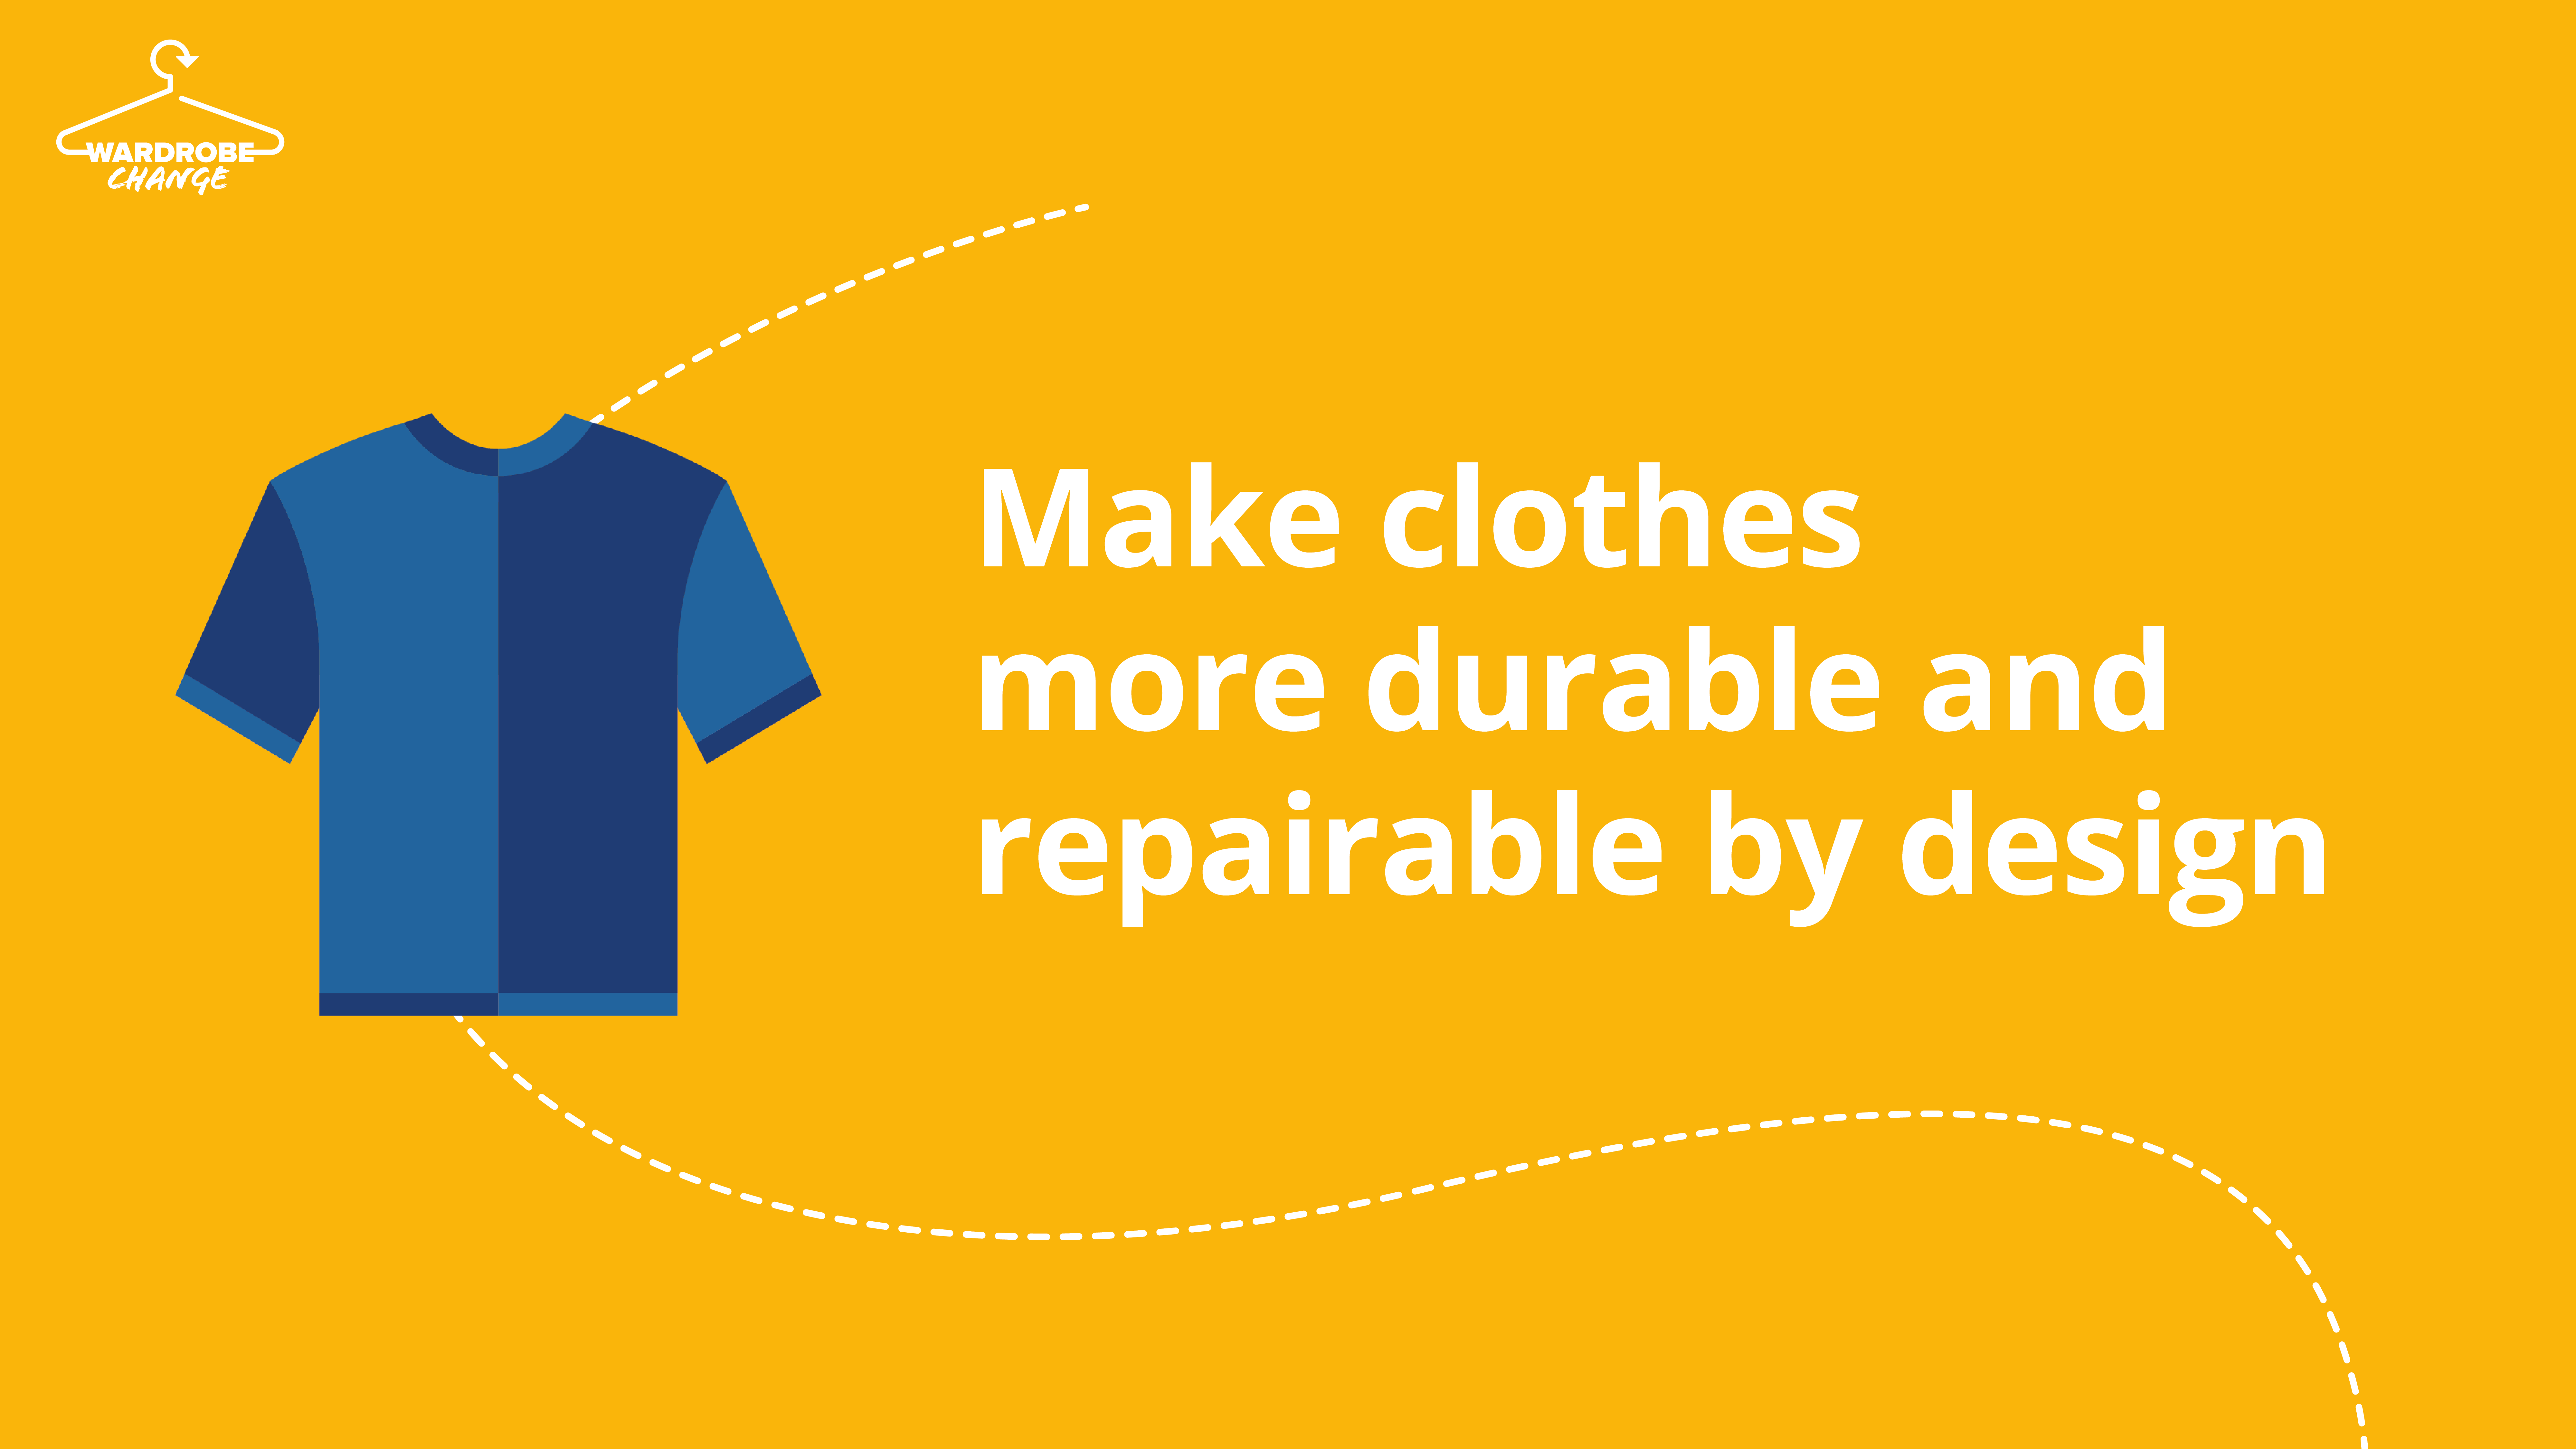 #WardrobeChange recommendations for the EU strategy for sustainable textiles